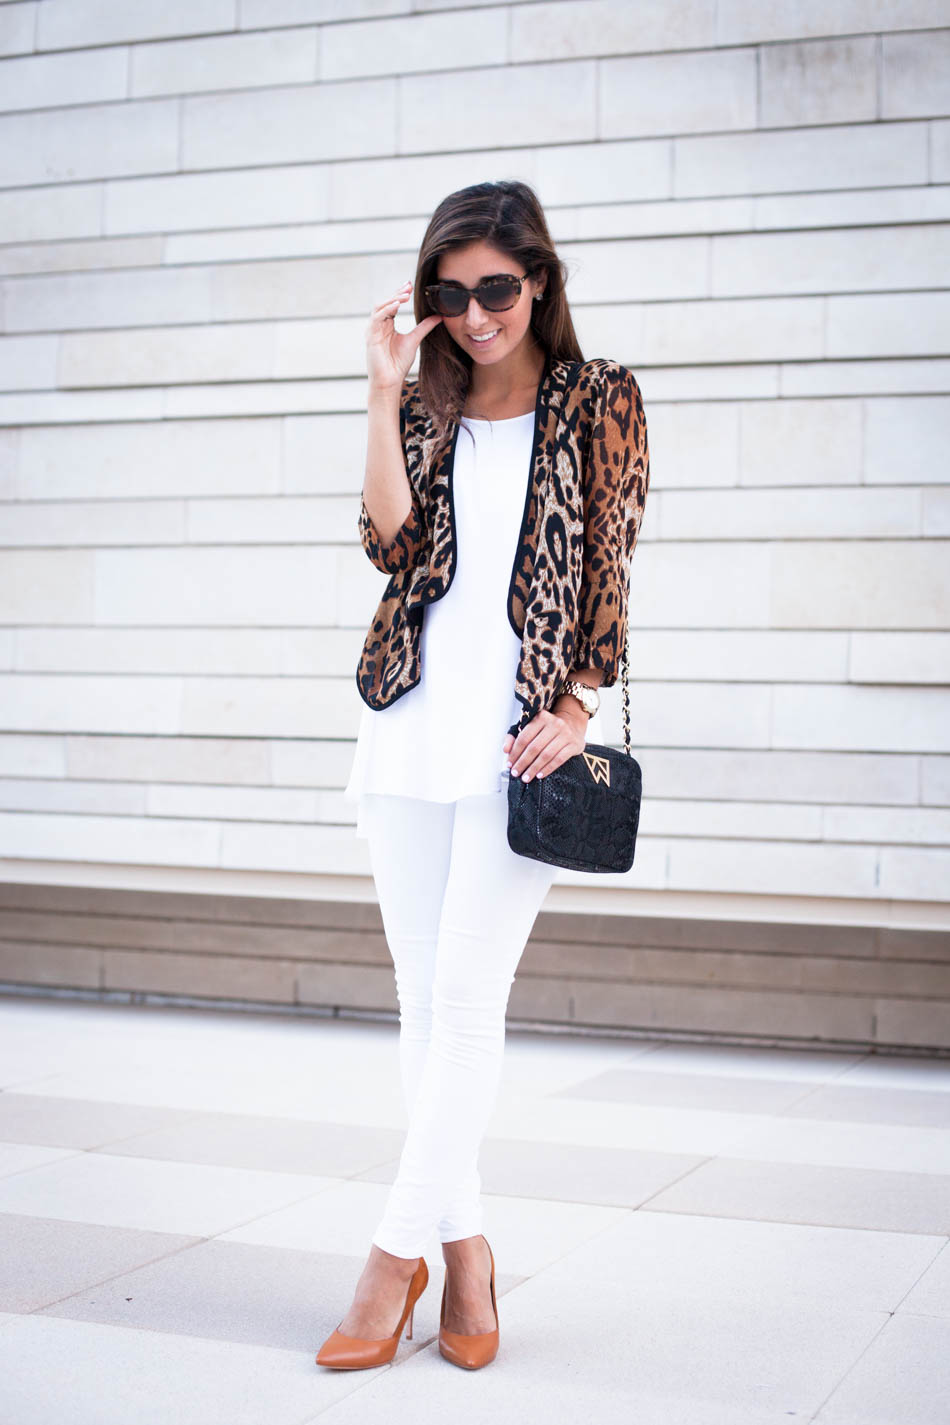 All white outfit with a pop of cheetah, love it!